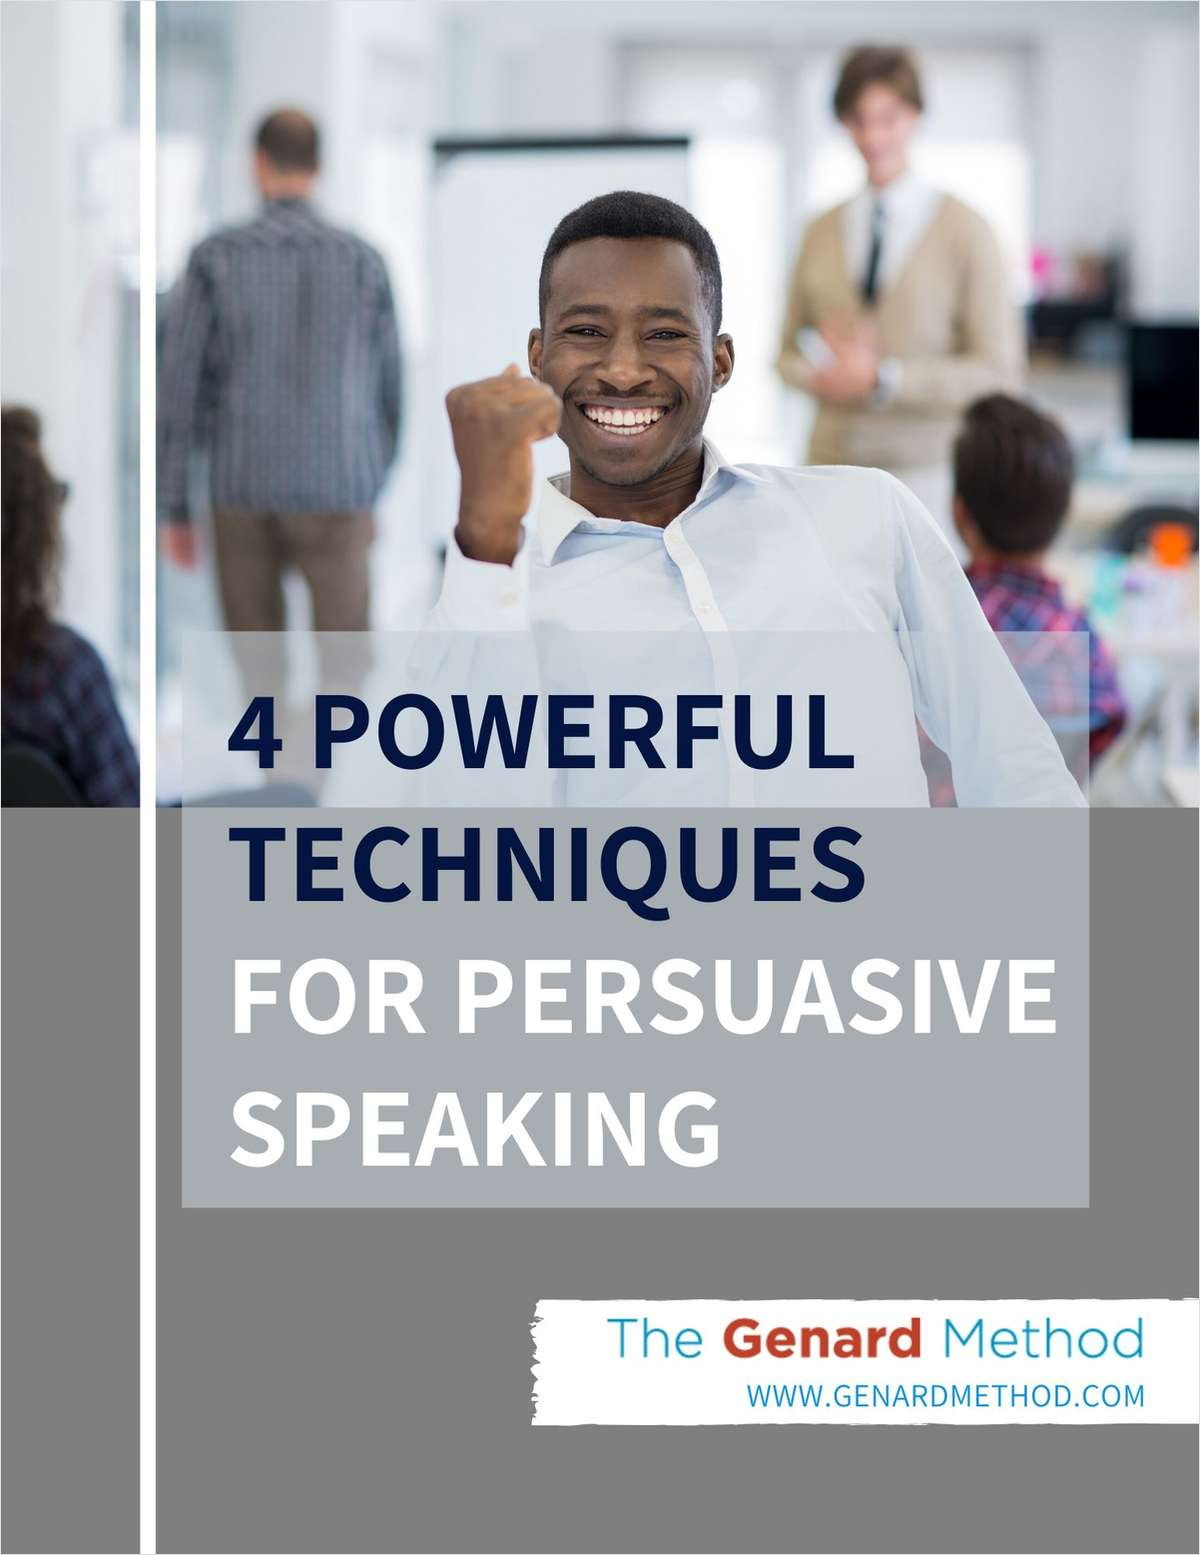 4 Powerful Techniques For Persuasive Speaking